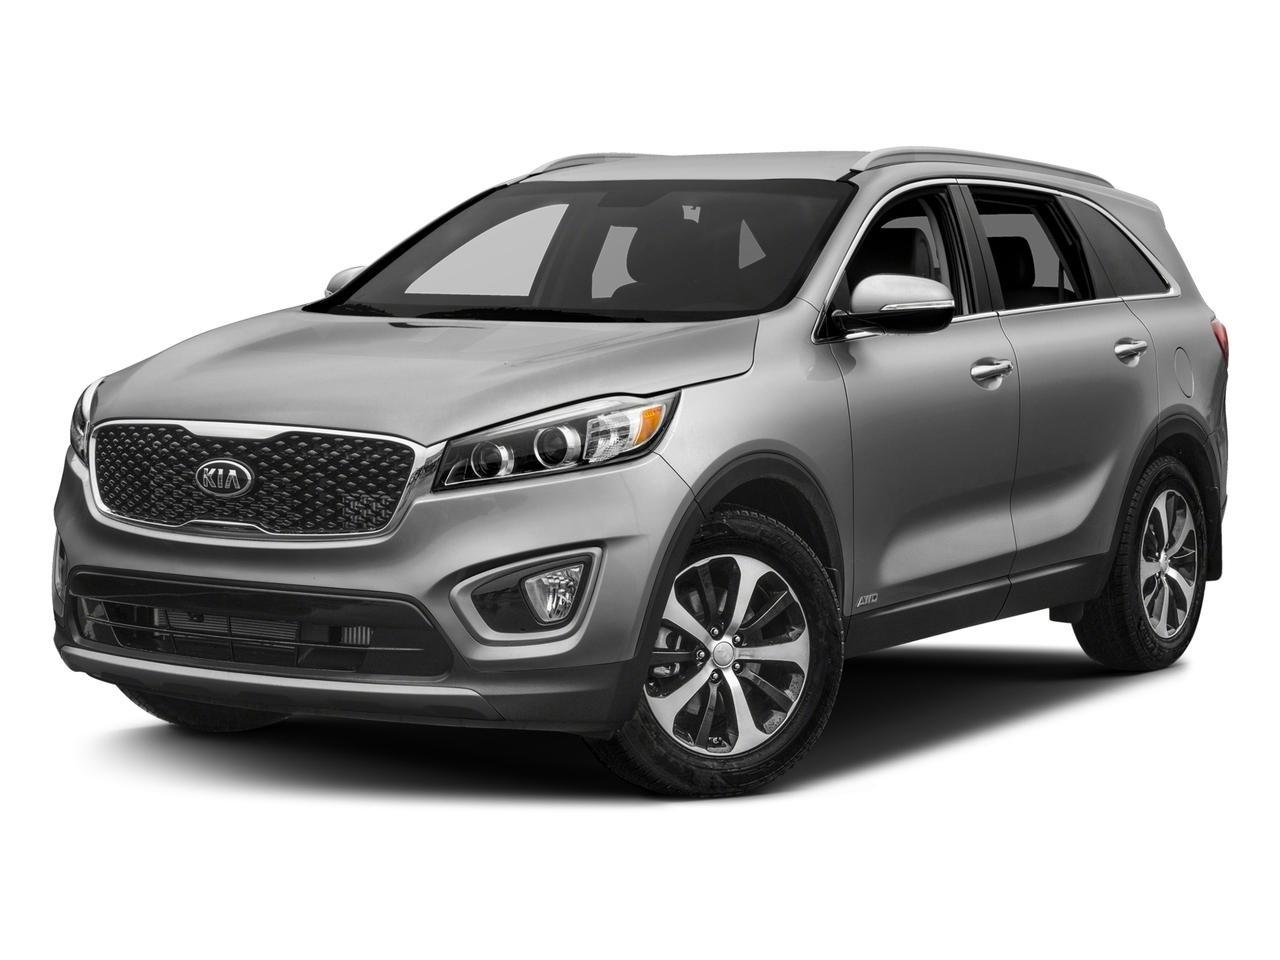 2018 Kia Sorento Vehicle Photo in Temple, TX 76502